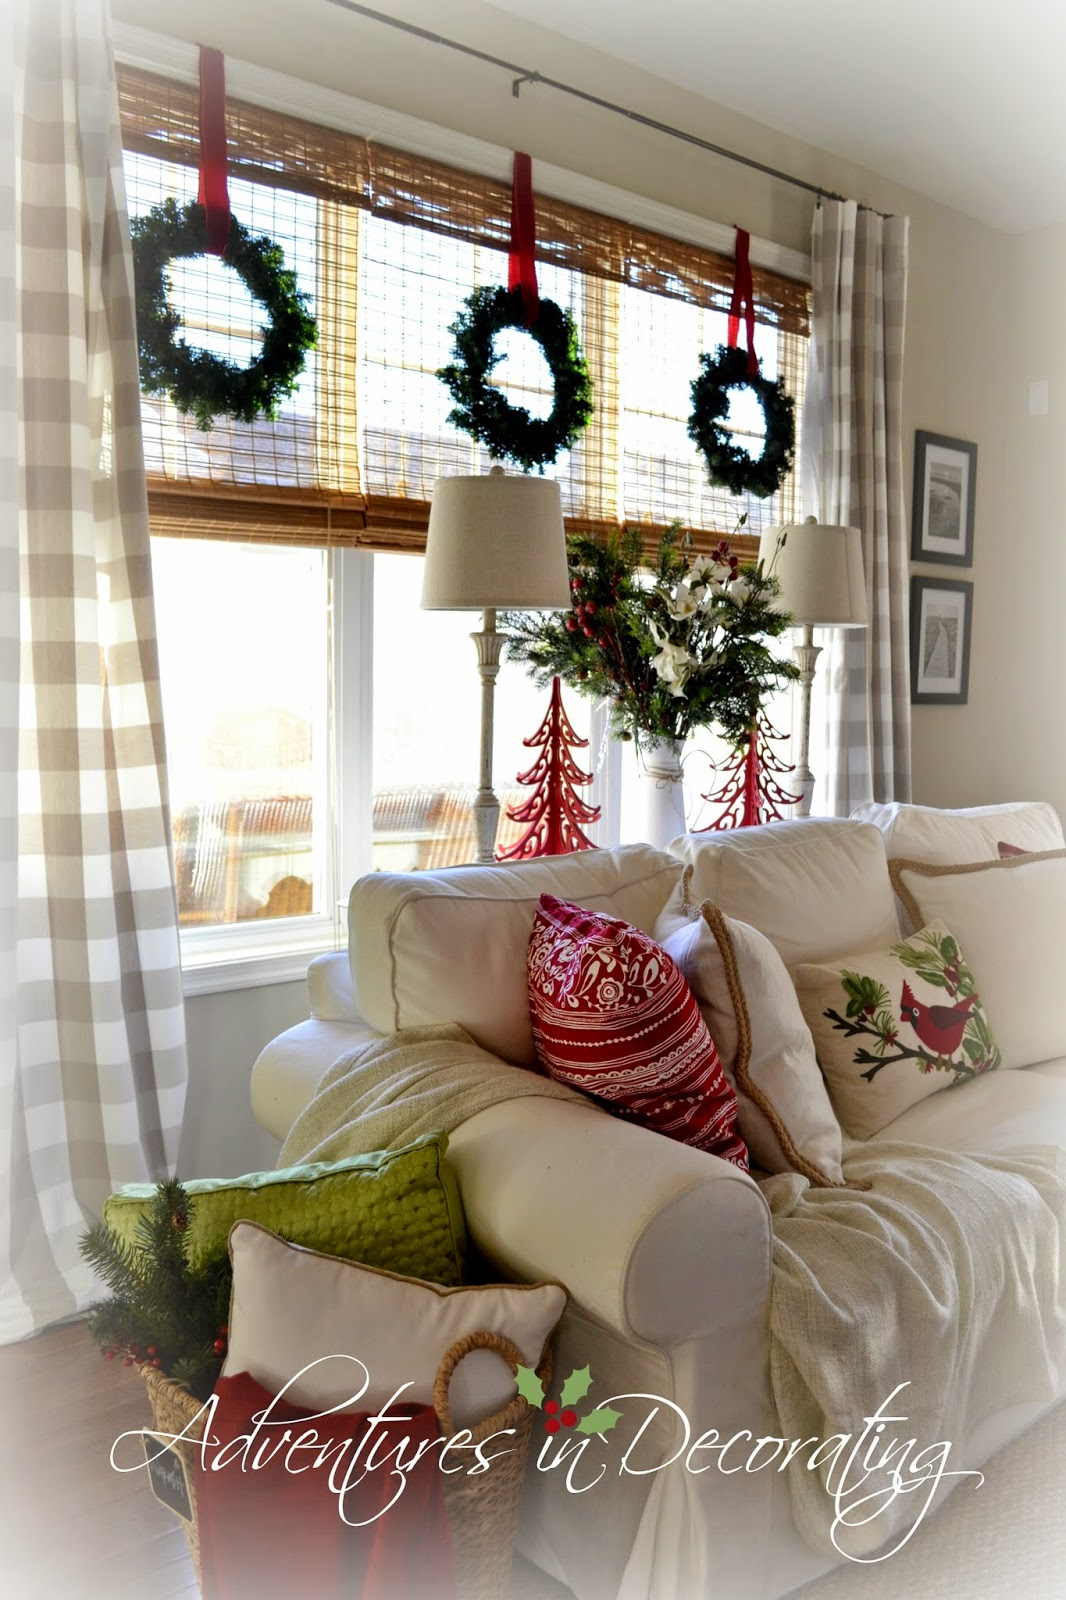 Decorating Great Room Living Area: Adventures In Decorating: Our 2014 Christmas Great Room